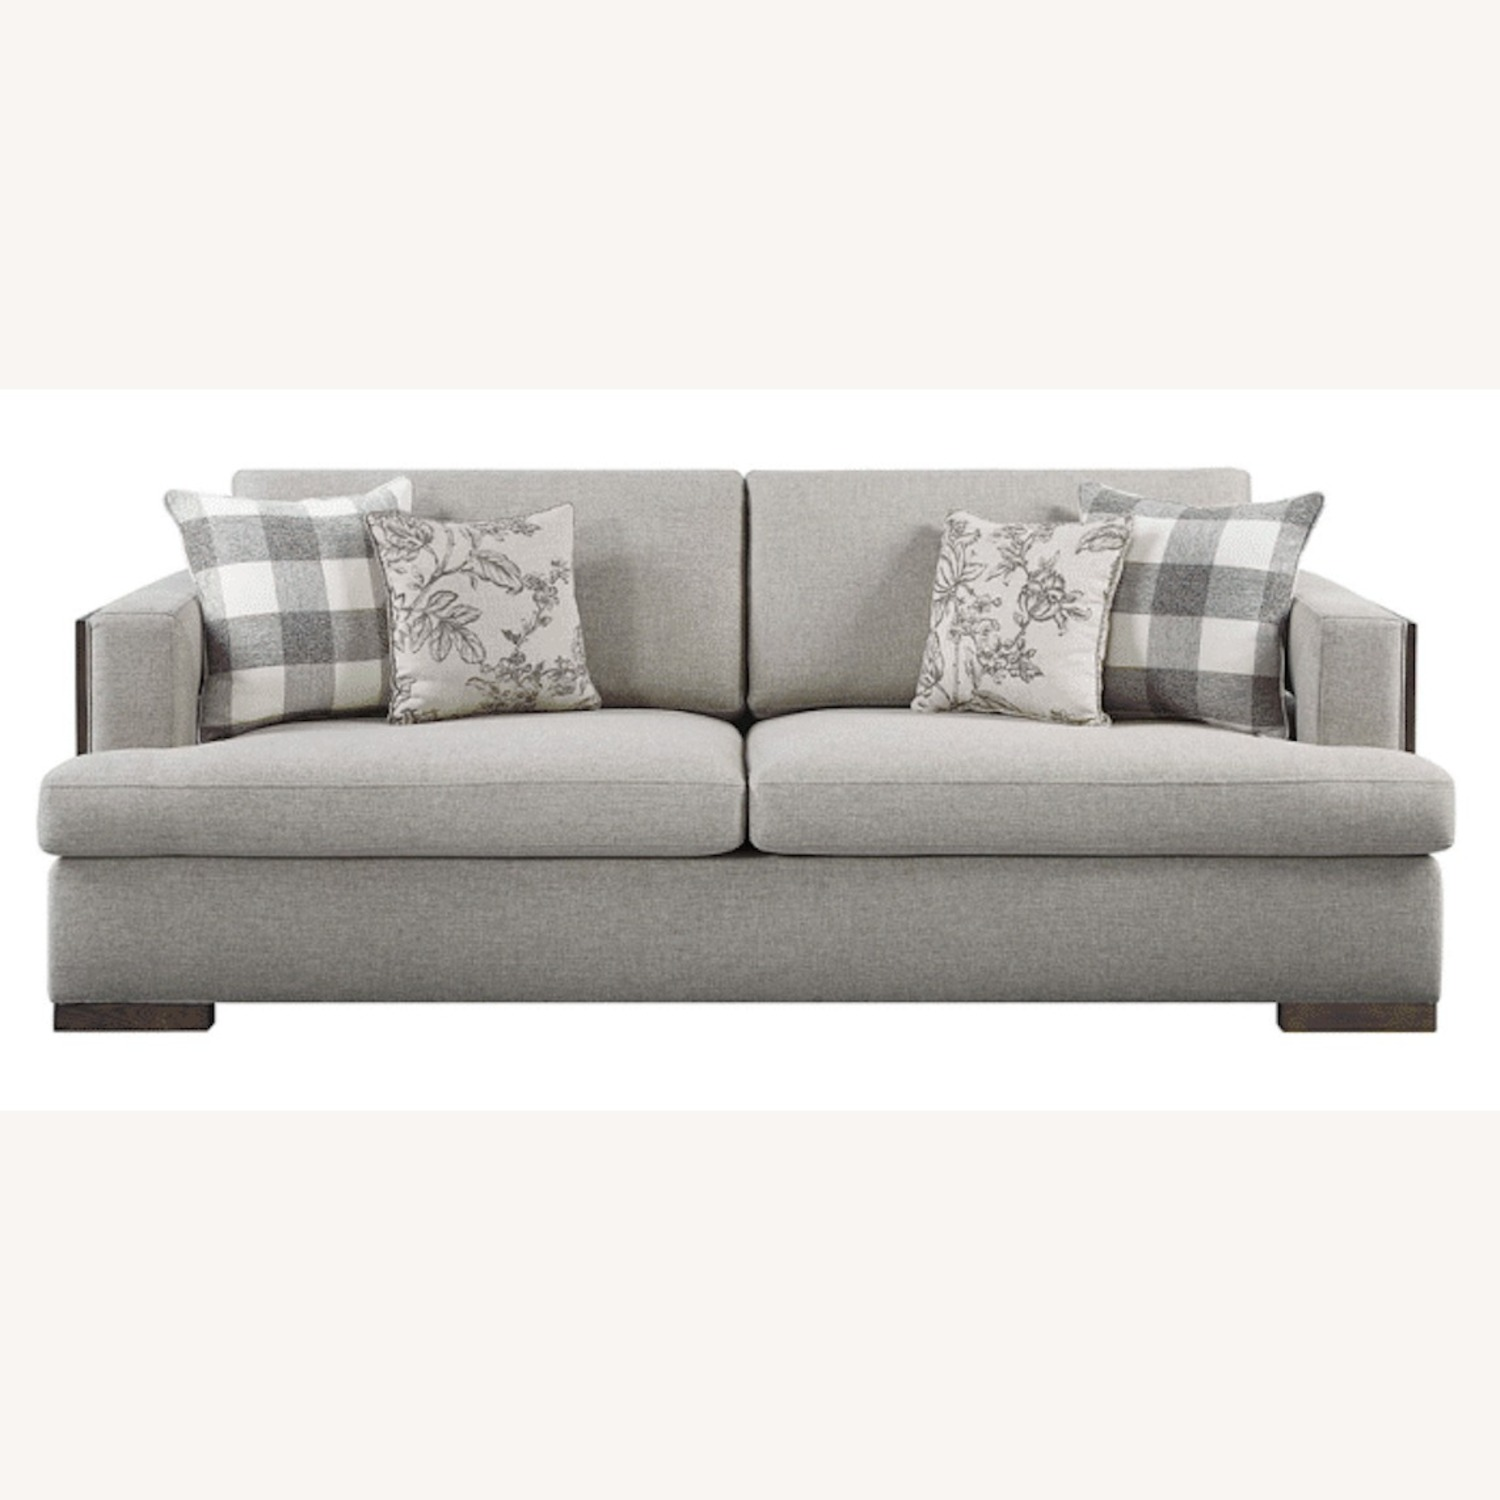 Ashley Furniture Couch - image-2